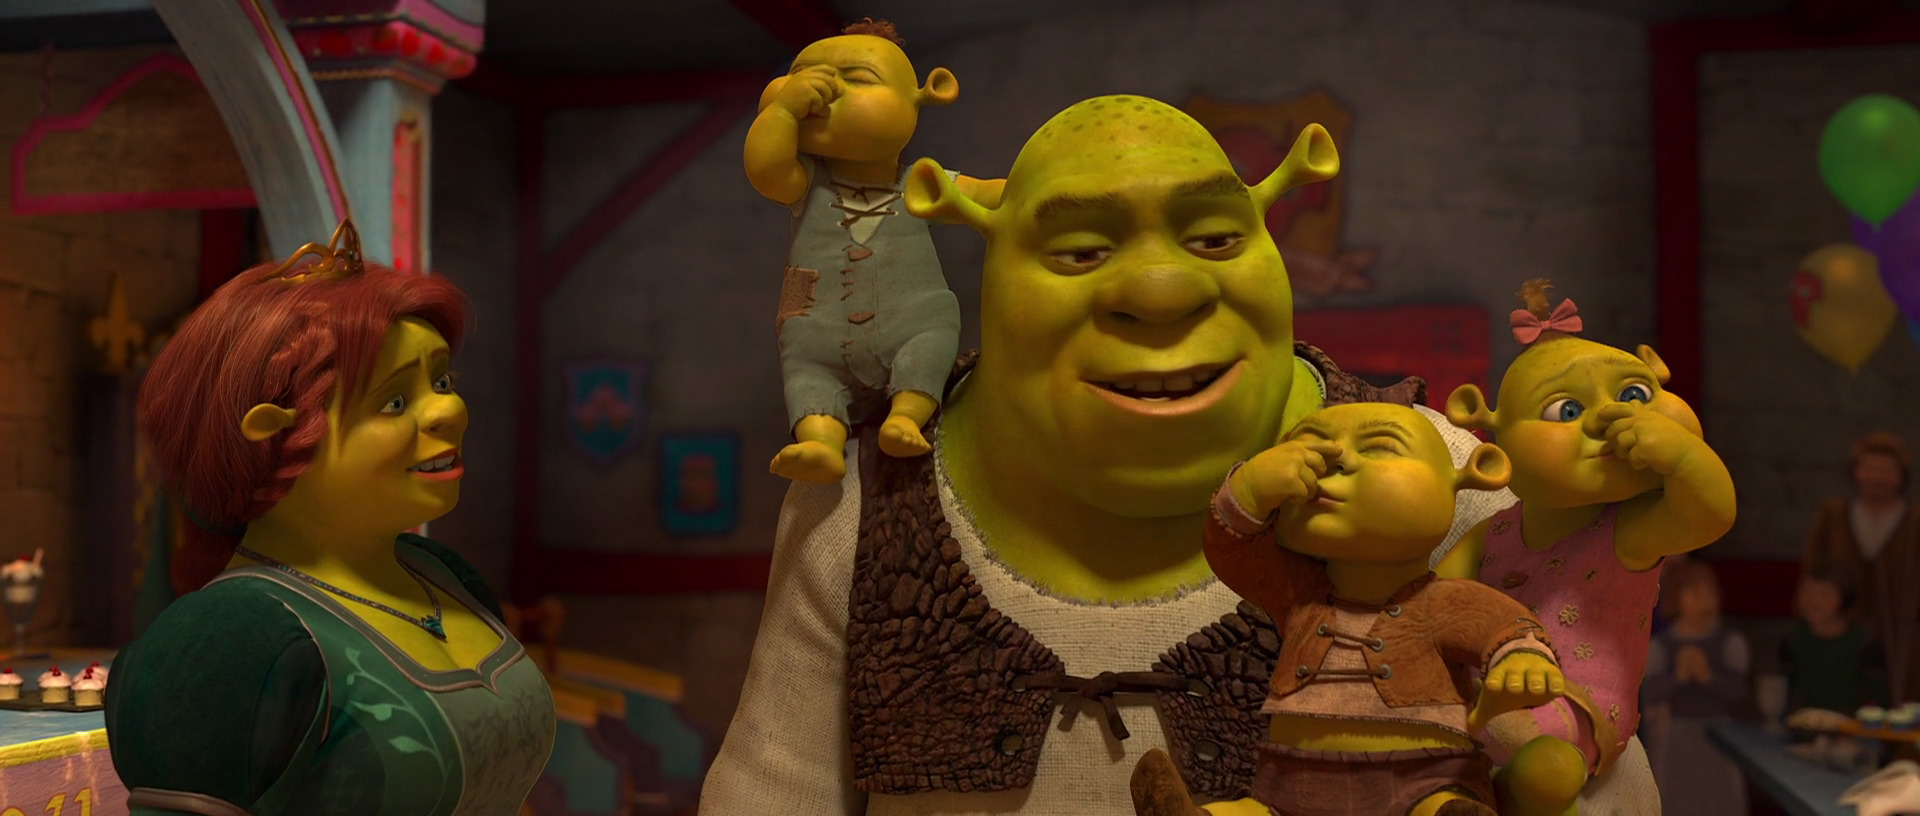 Shrek 5 Reboot Plot Spoilers and Leaks